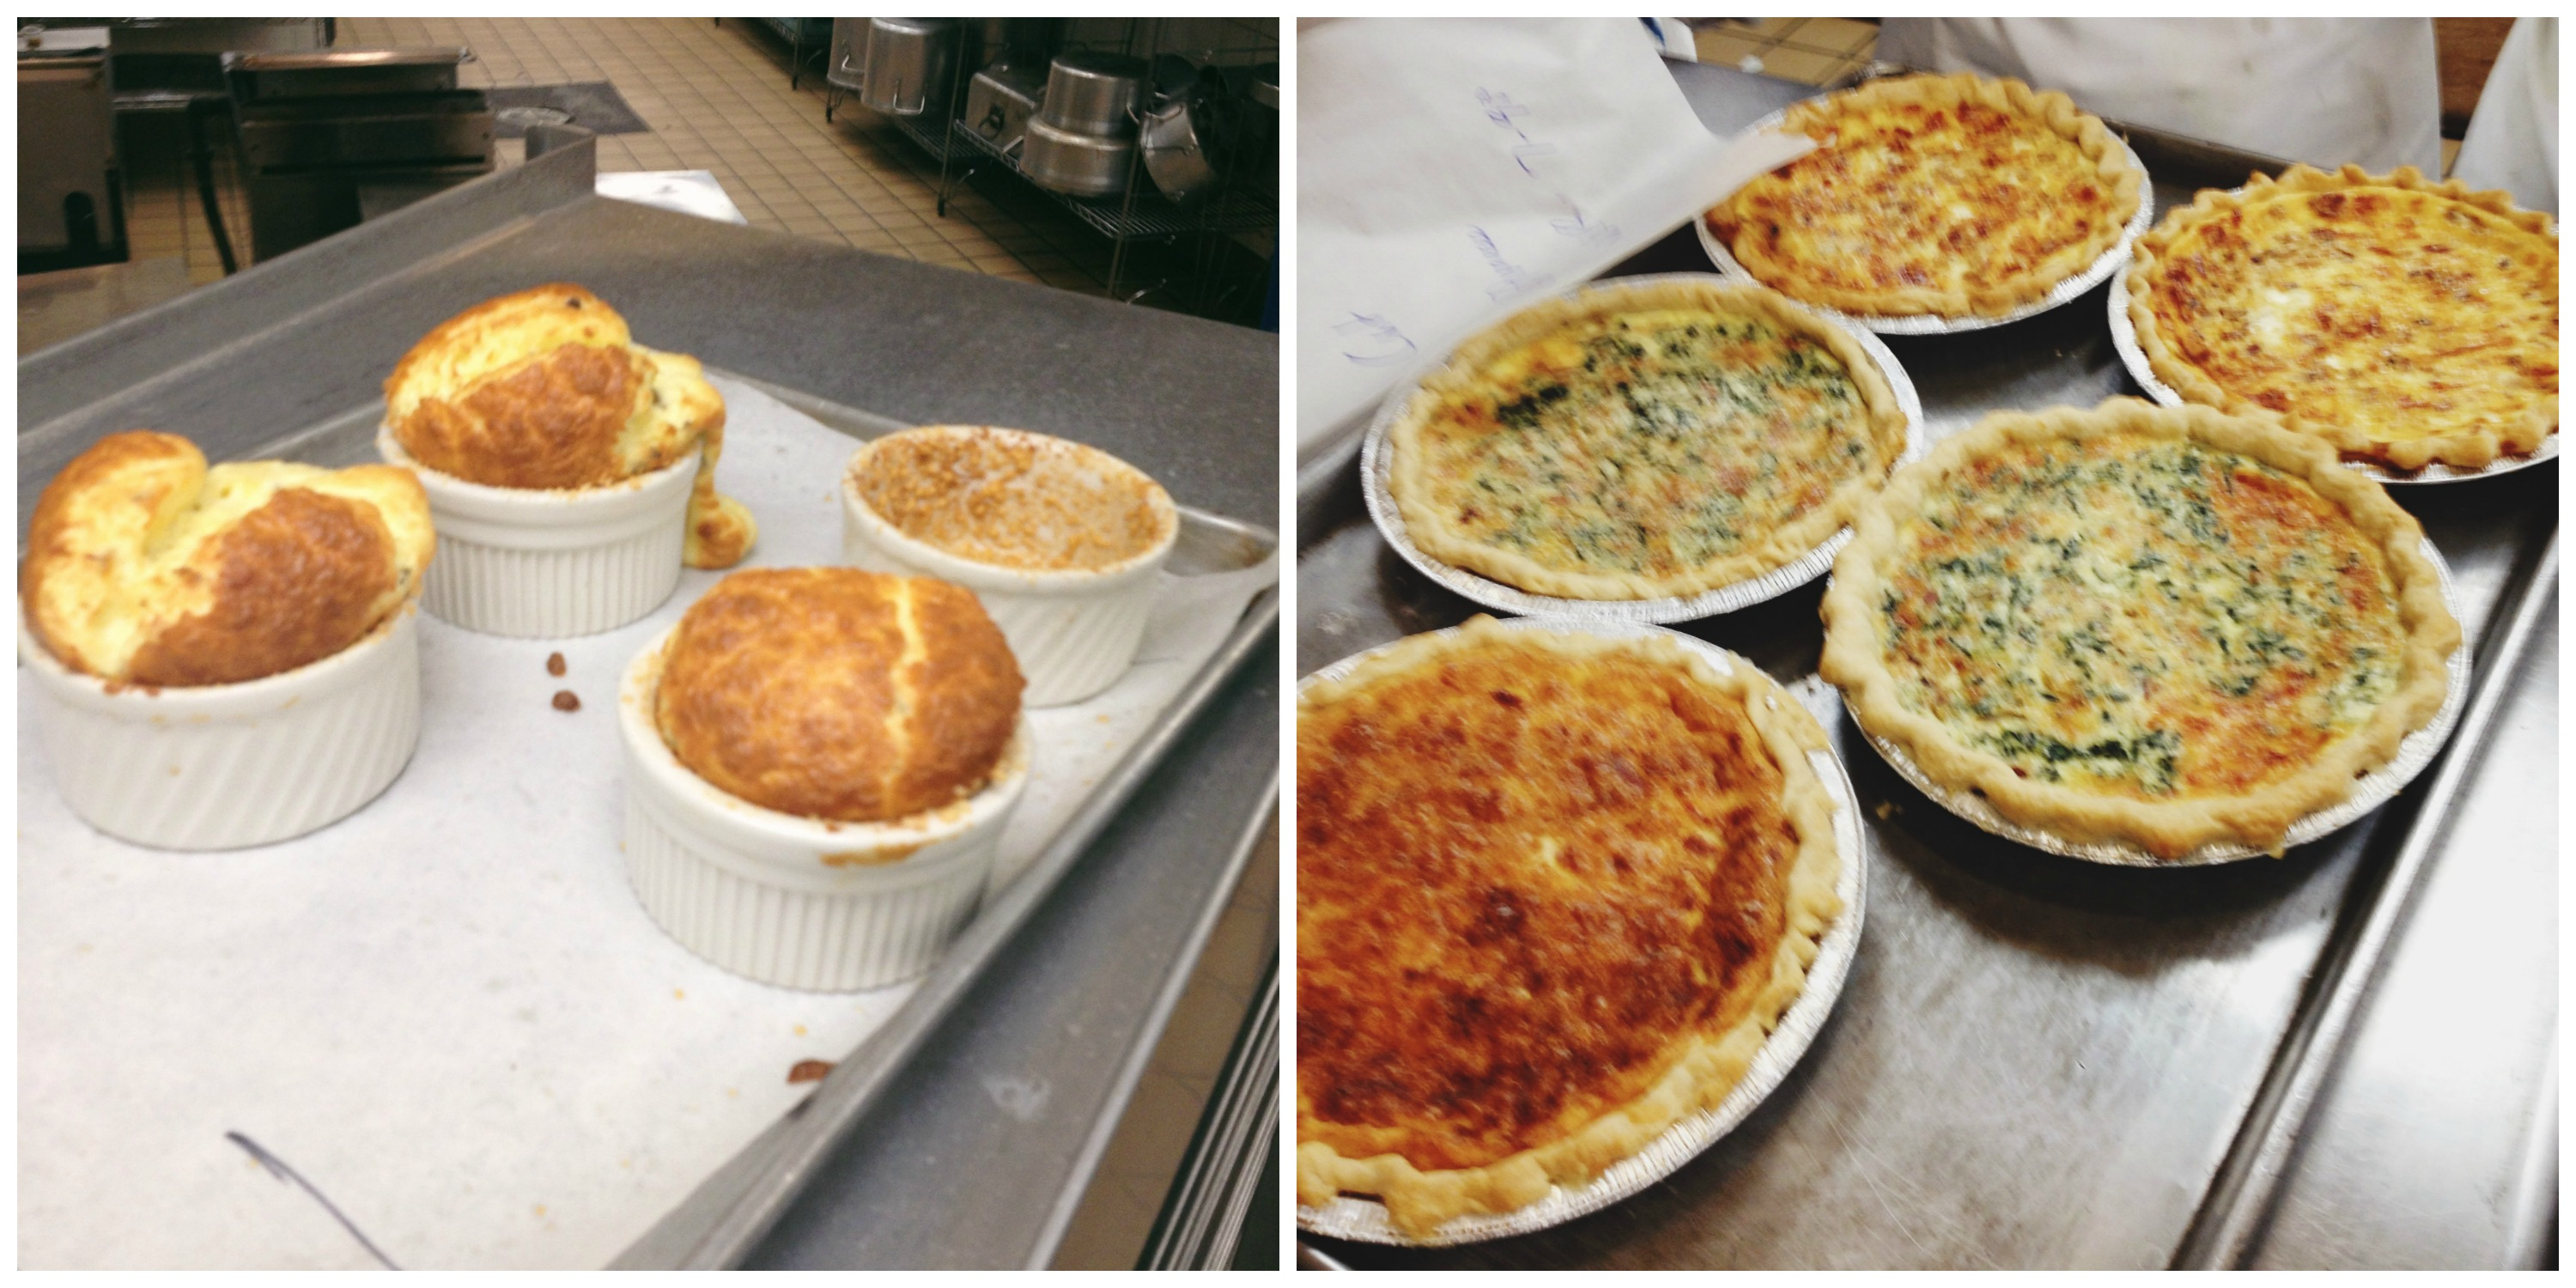 Souffles + Quiches